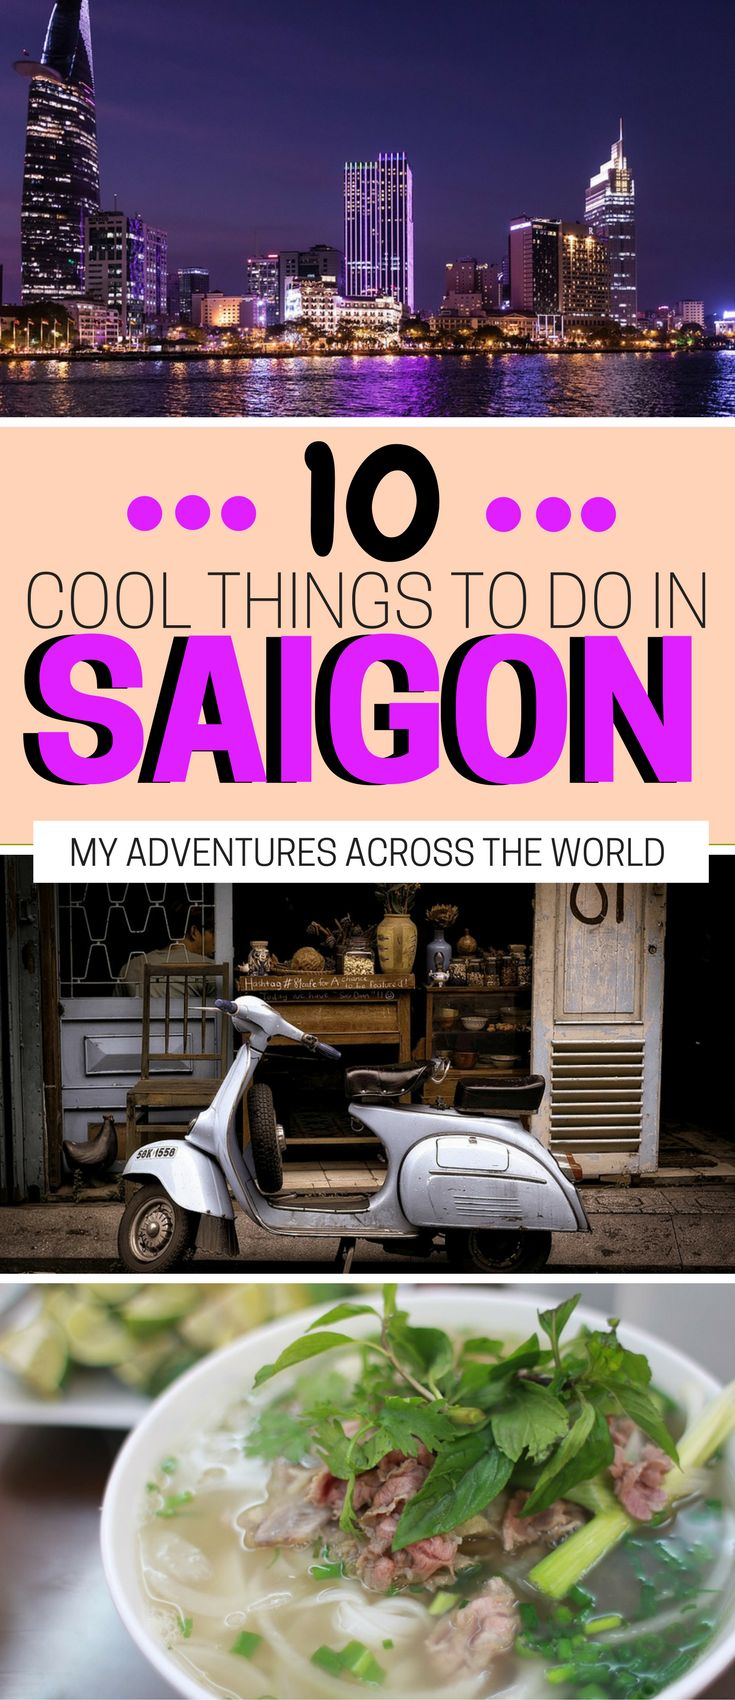 The 10 best things to do in Saigon, Vietnam: from the cultural activities to the delicious food, this post will help you decide what to do in Ho Chi Minh.   Saigon travel bucket lists   Ho Chi Minh things to do   What to see in Saigon #saigon #hochiminh - via @clautavani